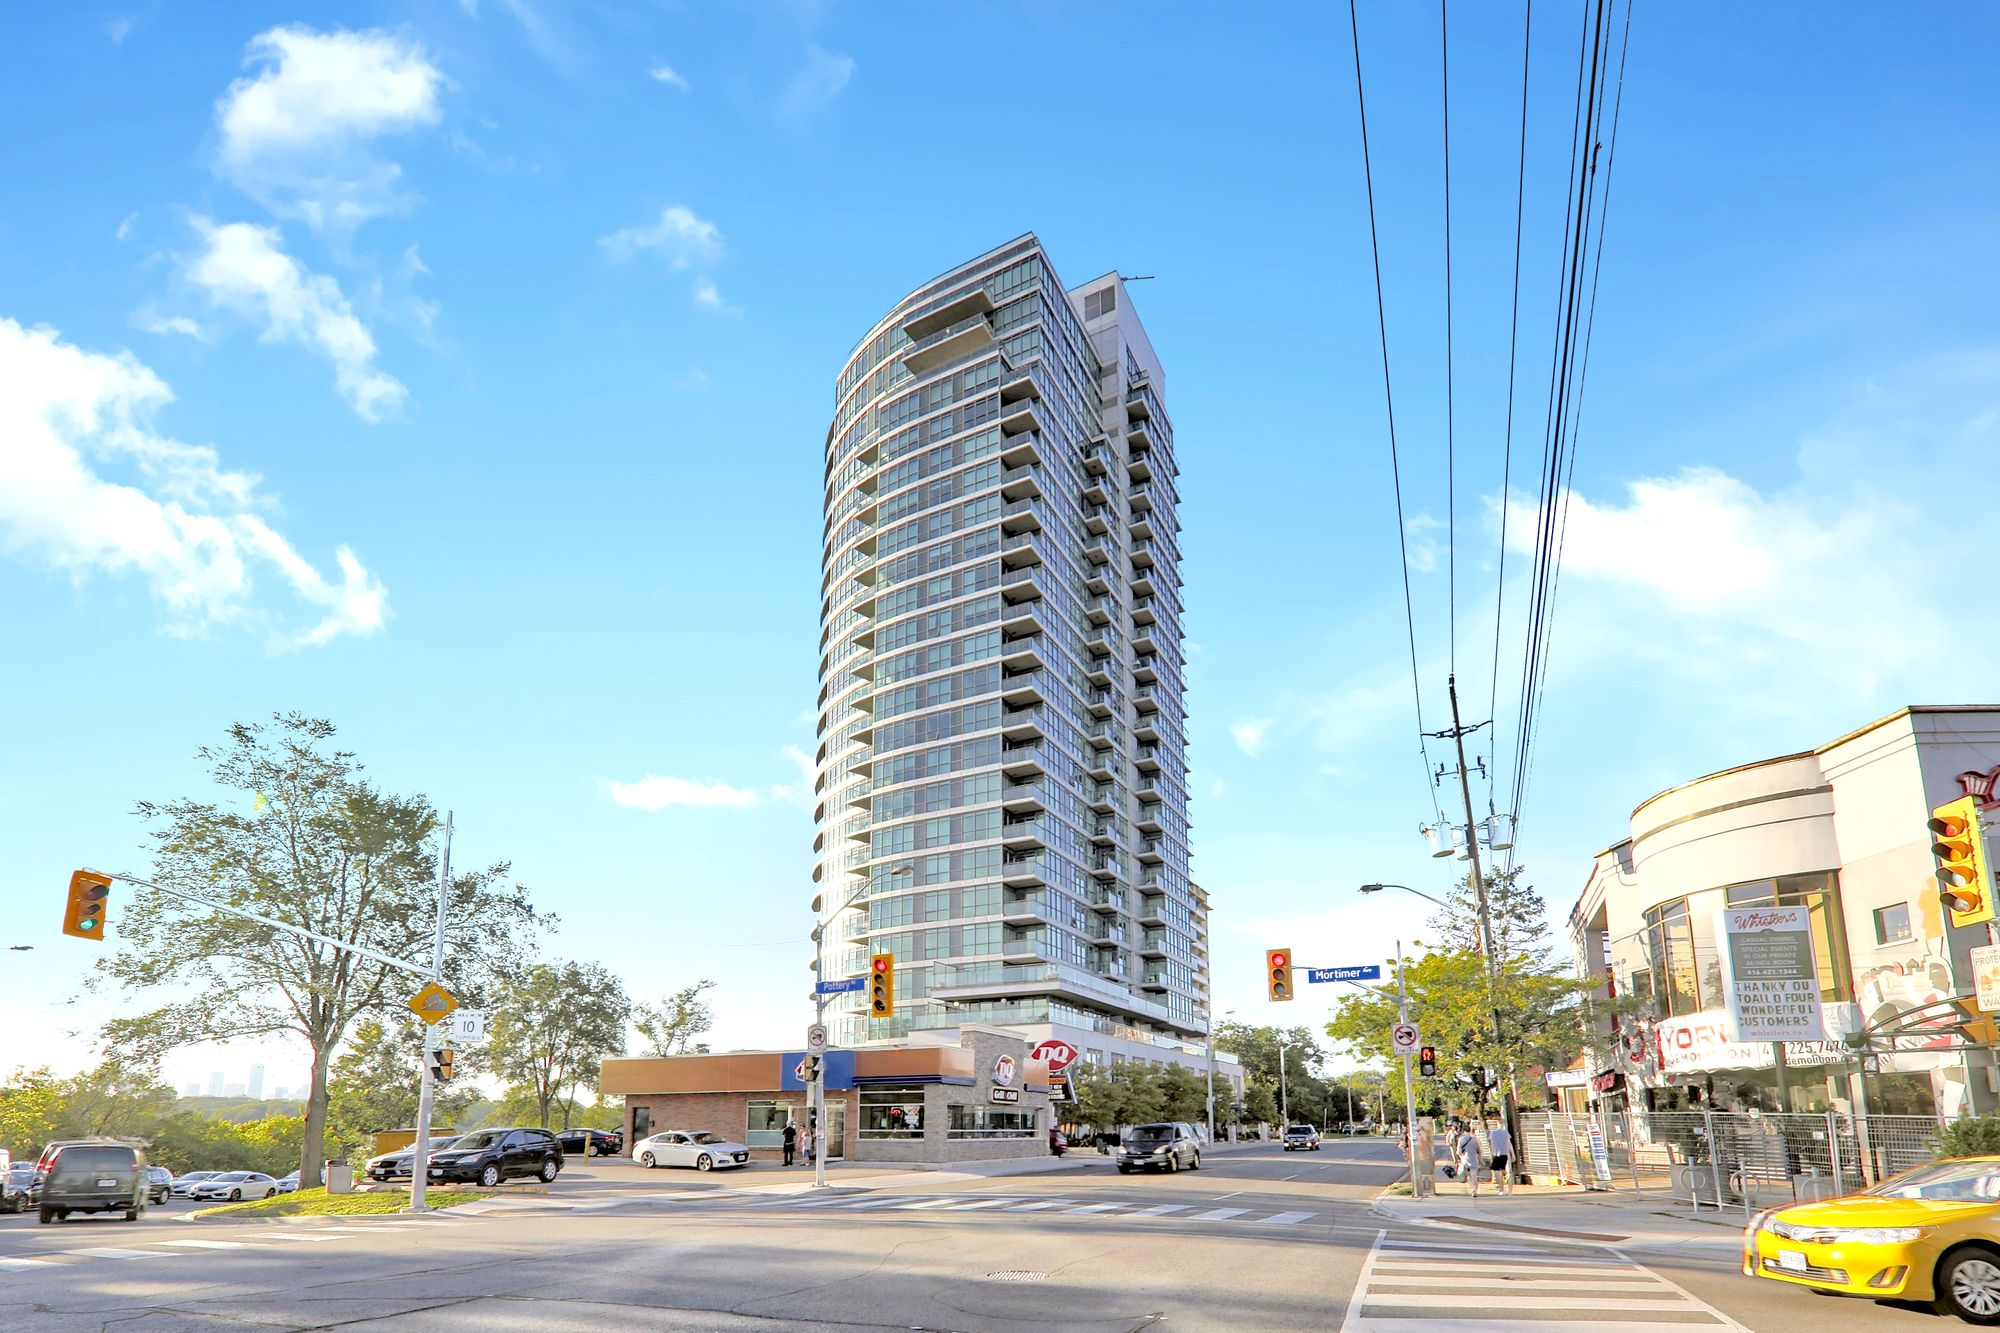 1048 Broadview Ave. This condo at Minto Skyy is located in  East York, Toronto - image #1 of 7 by Strata.ca